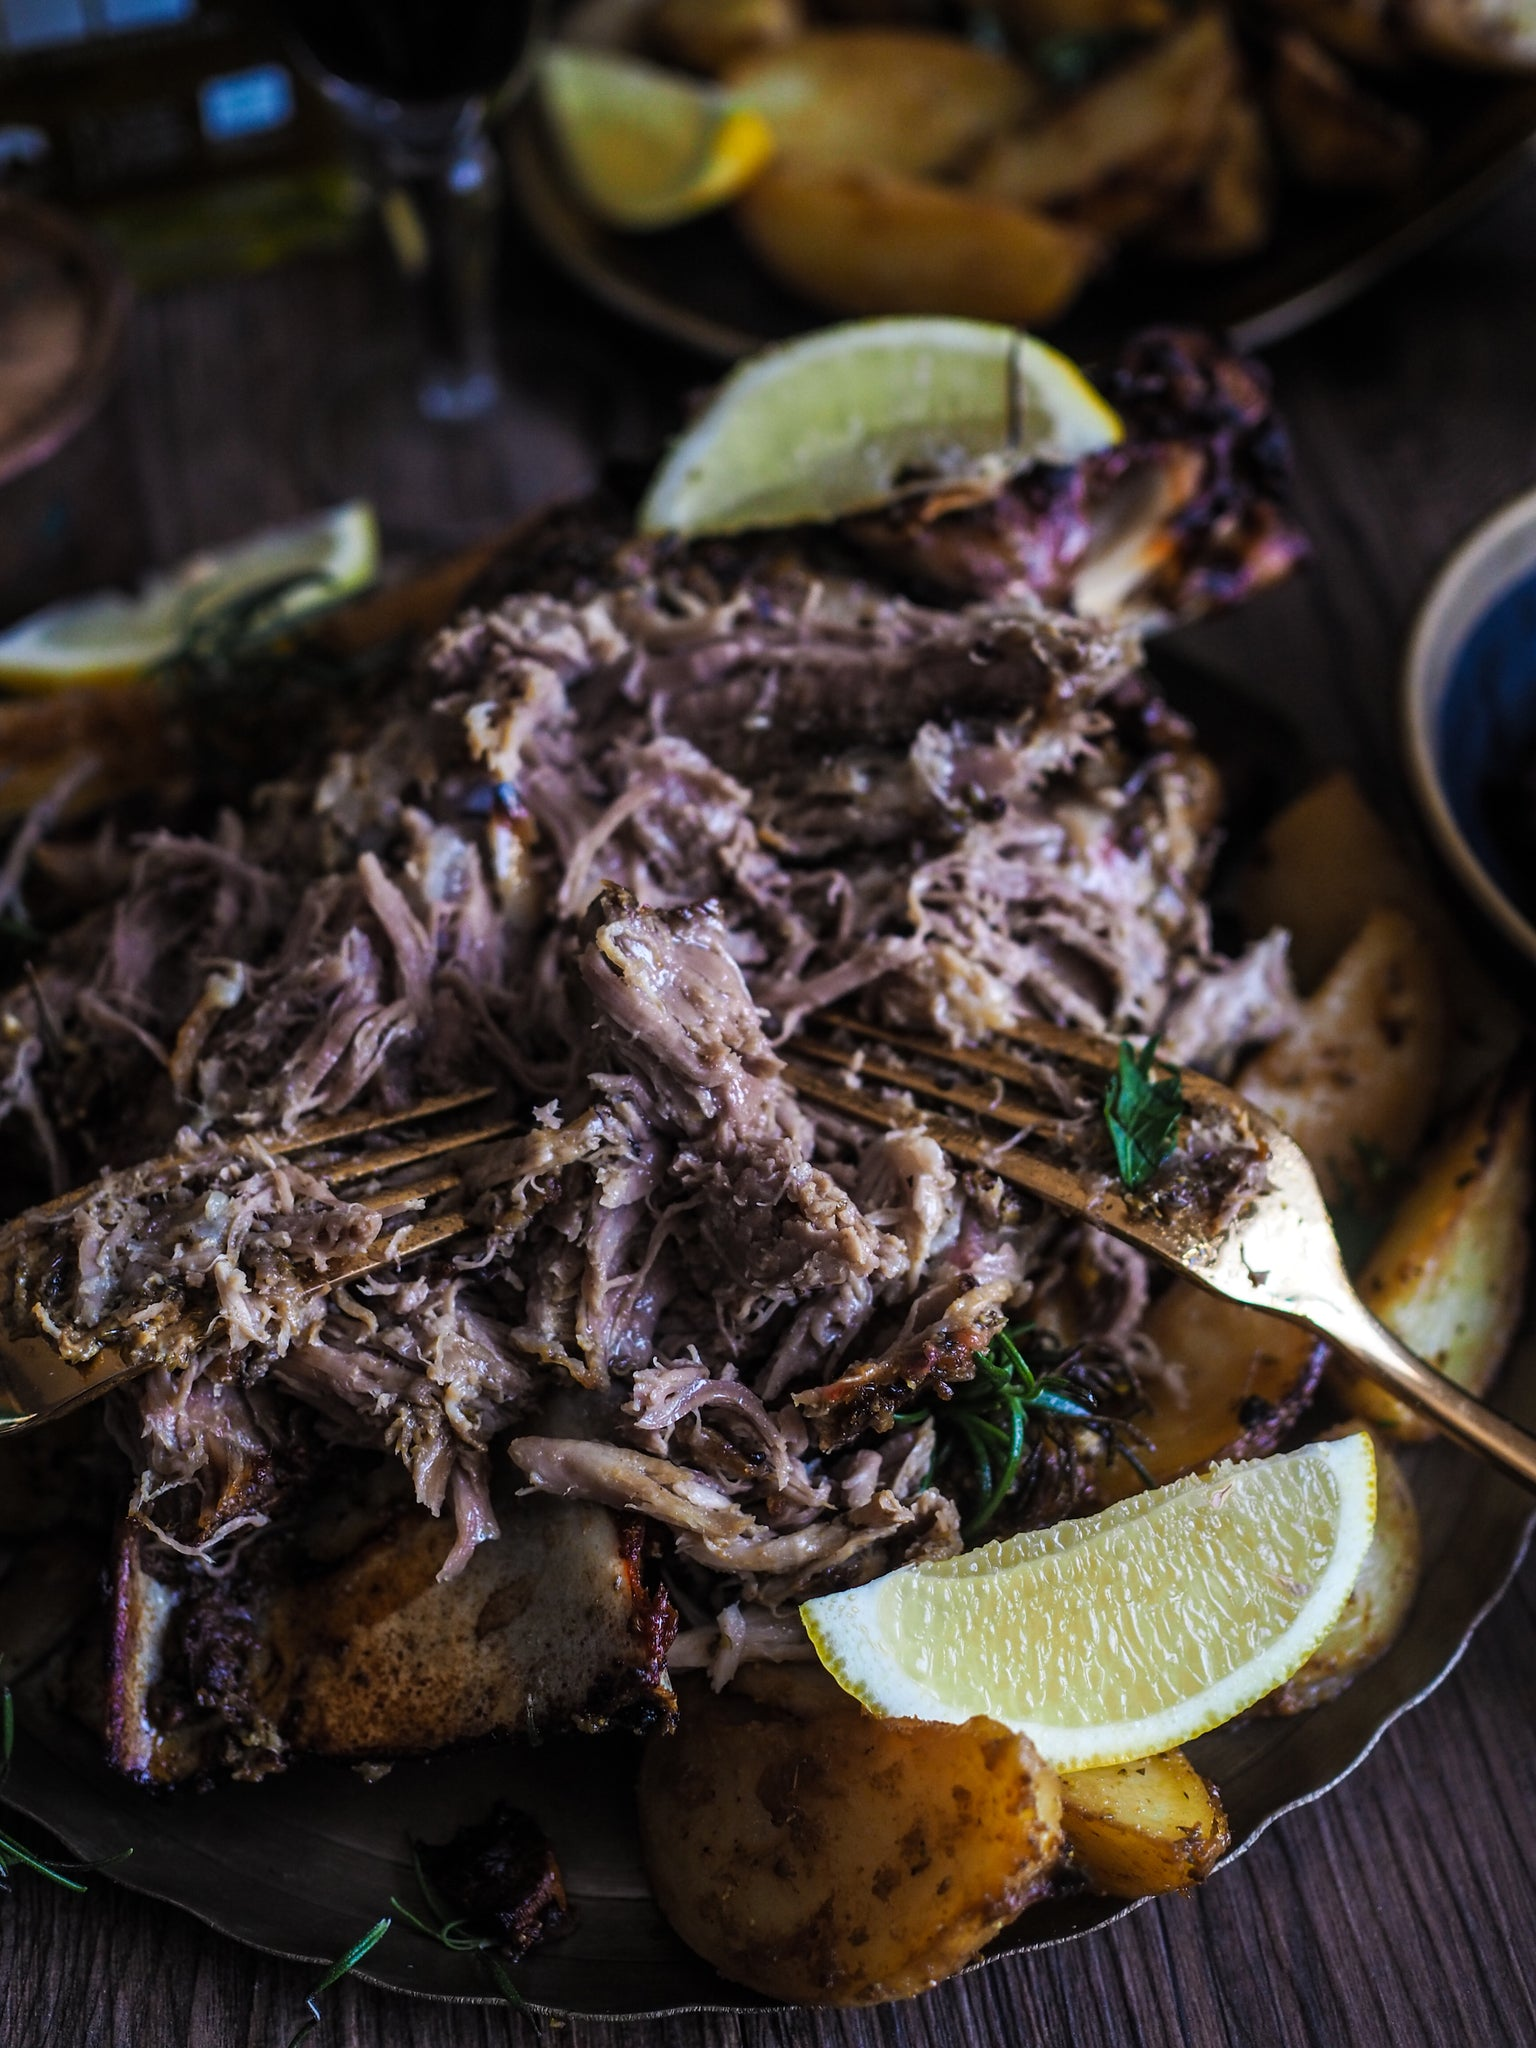 Slow lamb roast recipe for Greek Easter with high quality cooking ingredients by Grecian Purveyor. Australia's gourmet grocer. Recipe by Lorraine Elliott from NOT QUITE NIGELLA